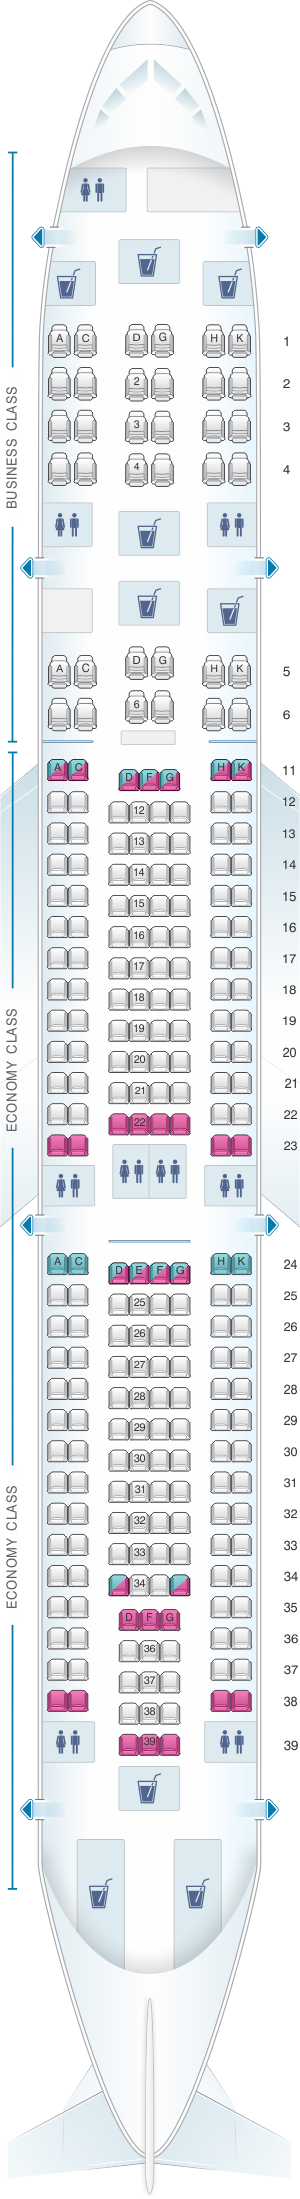 Seat map for Hi Fly Airbus A340 300 SOL 254pax